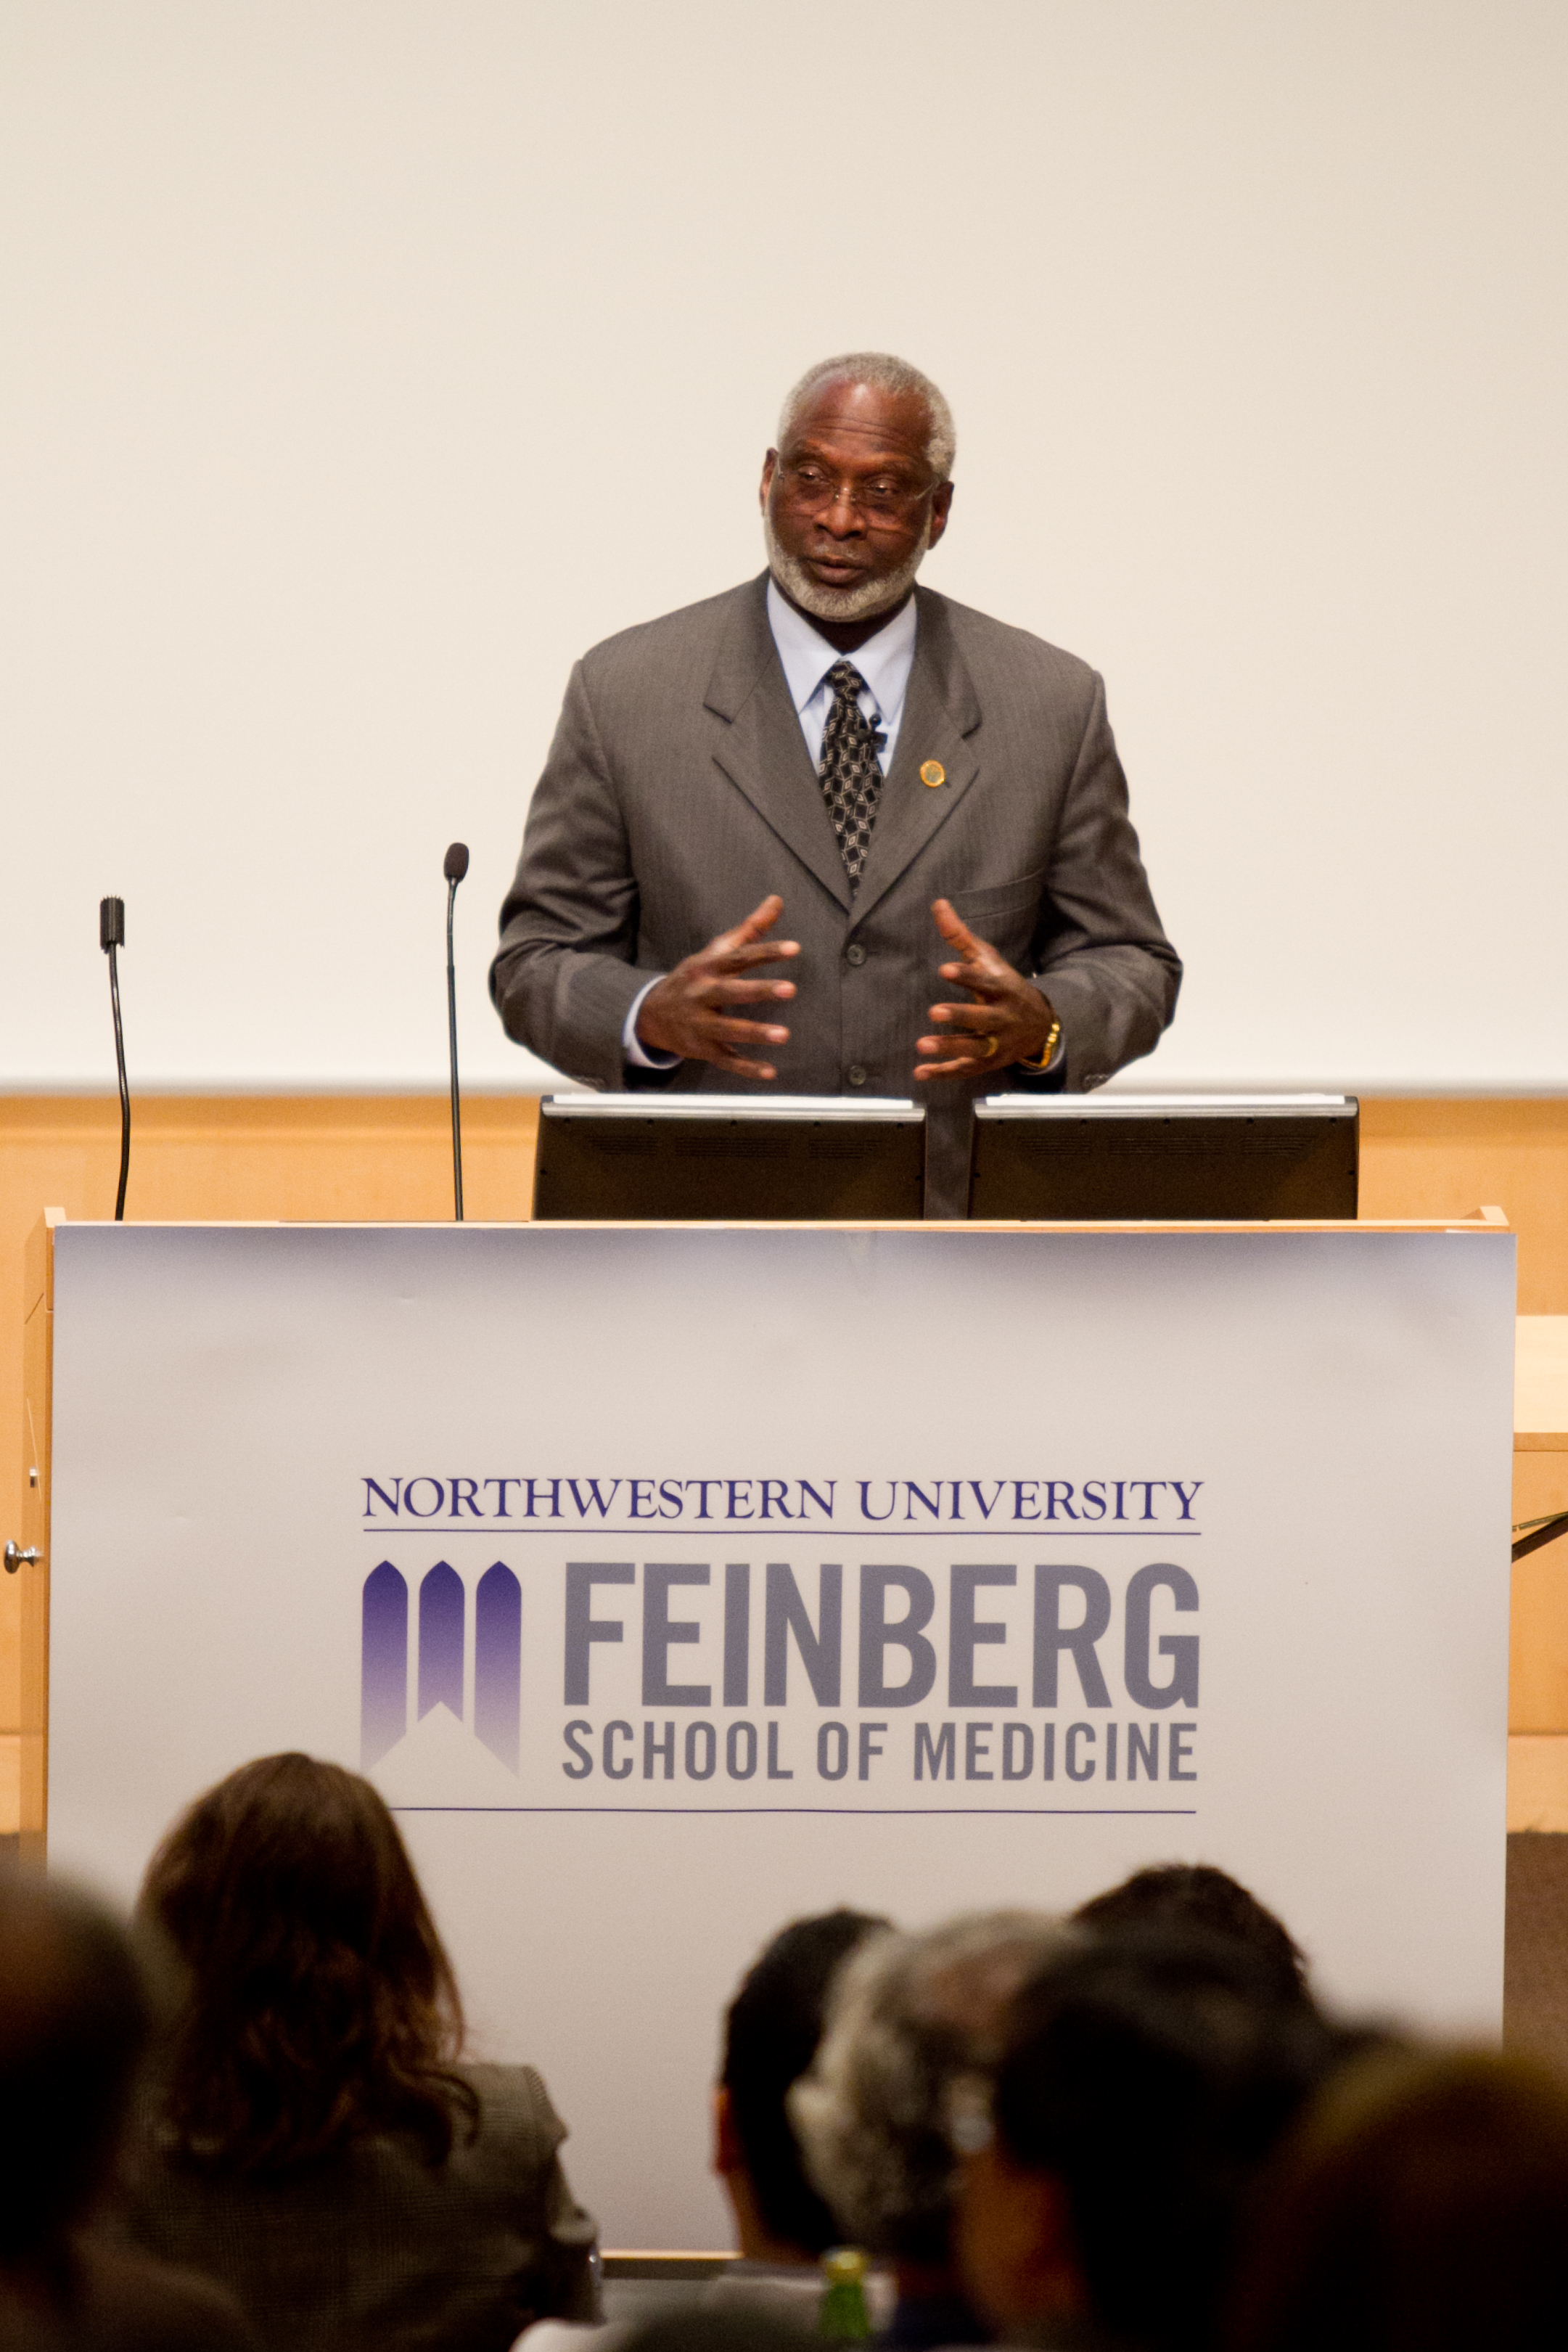 David Satcher, MD, PhD